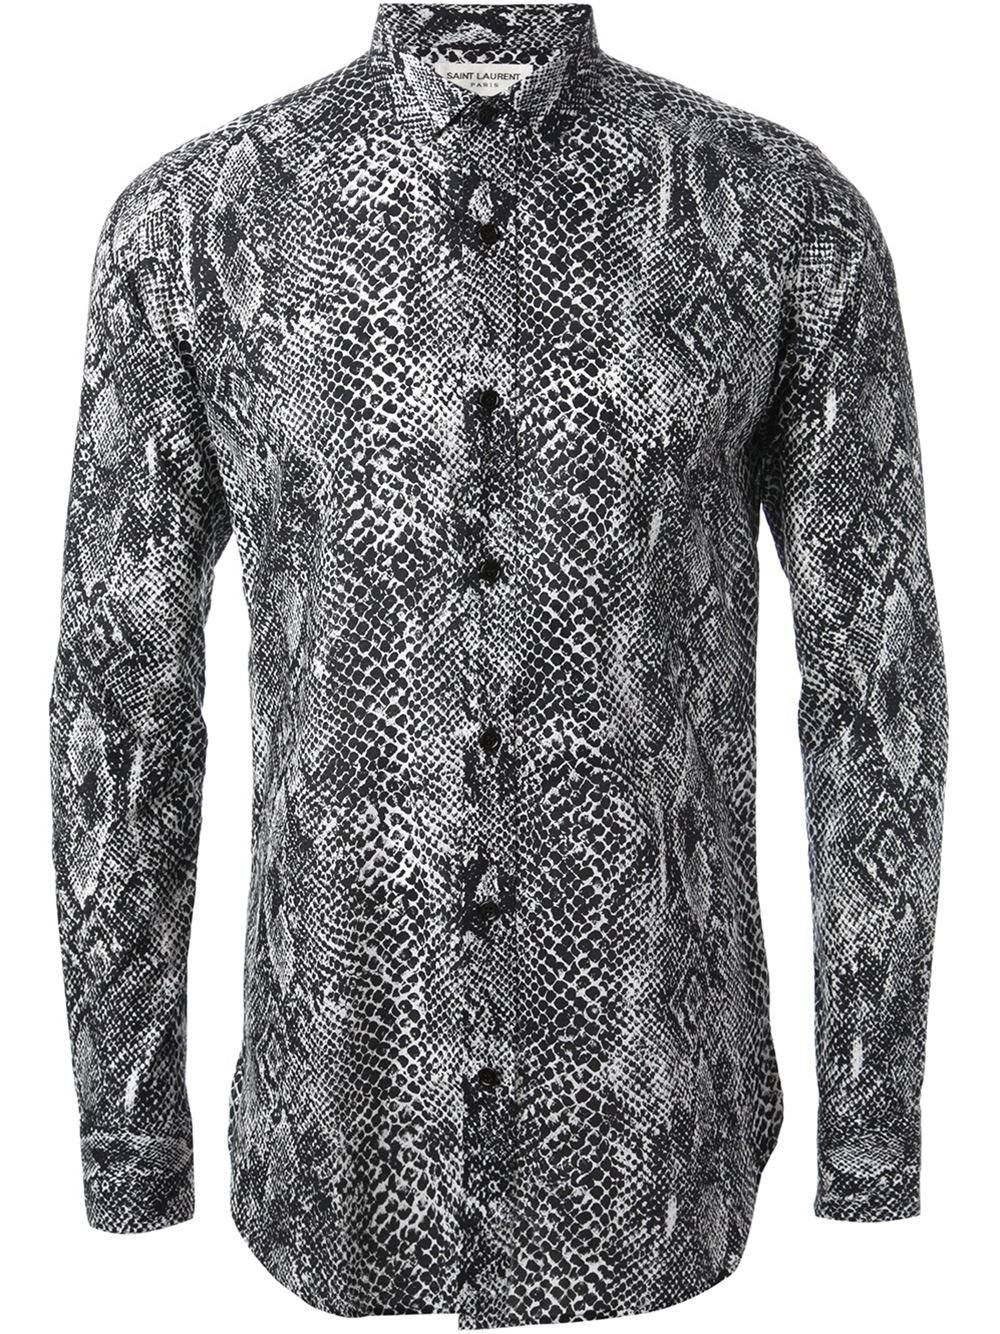 Saint Laurent Snakeskin Print Shirt in Black for Men